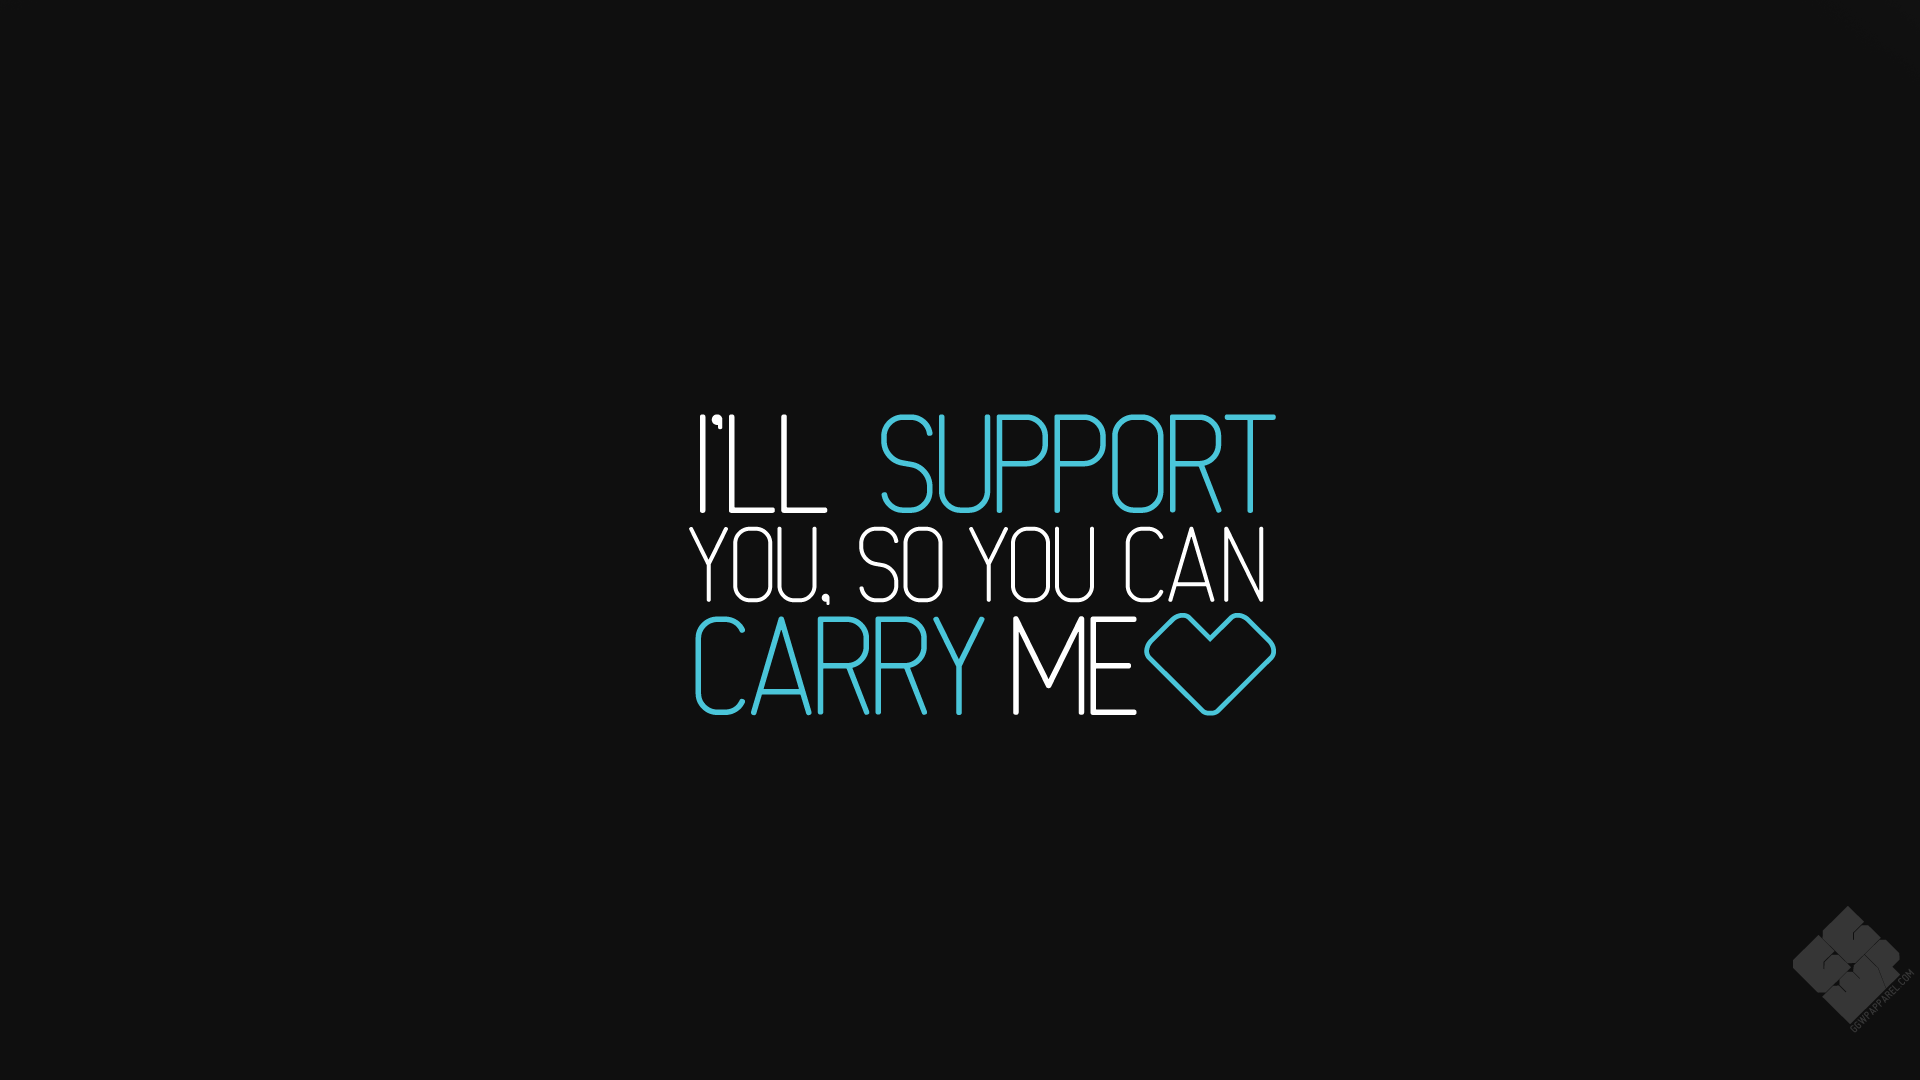 i will support you so you can carry me, hd typography, 4k wallpapers